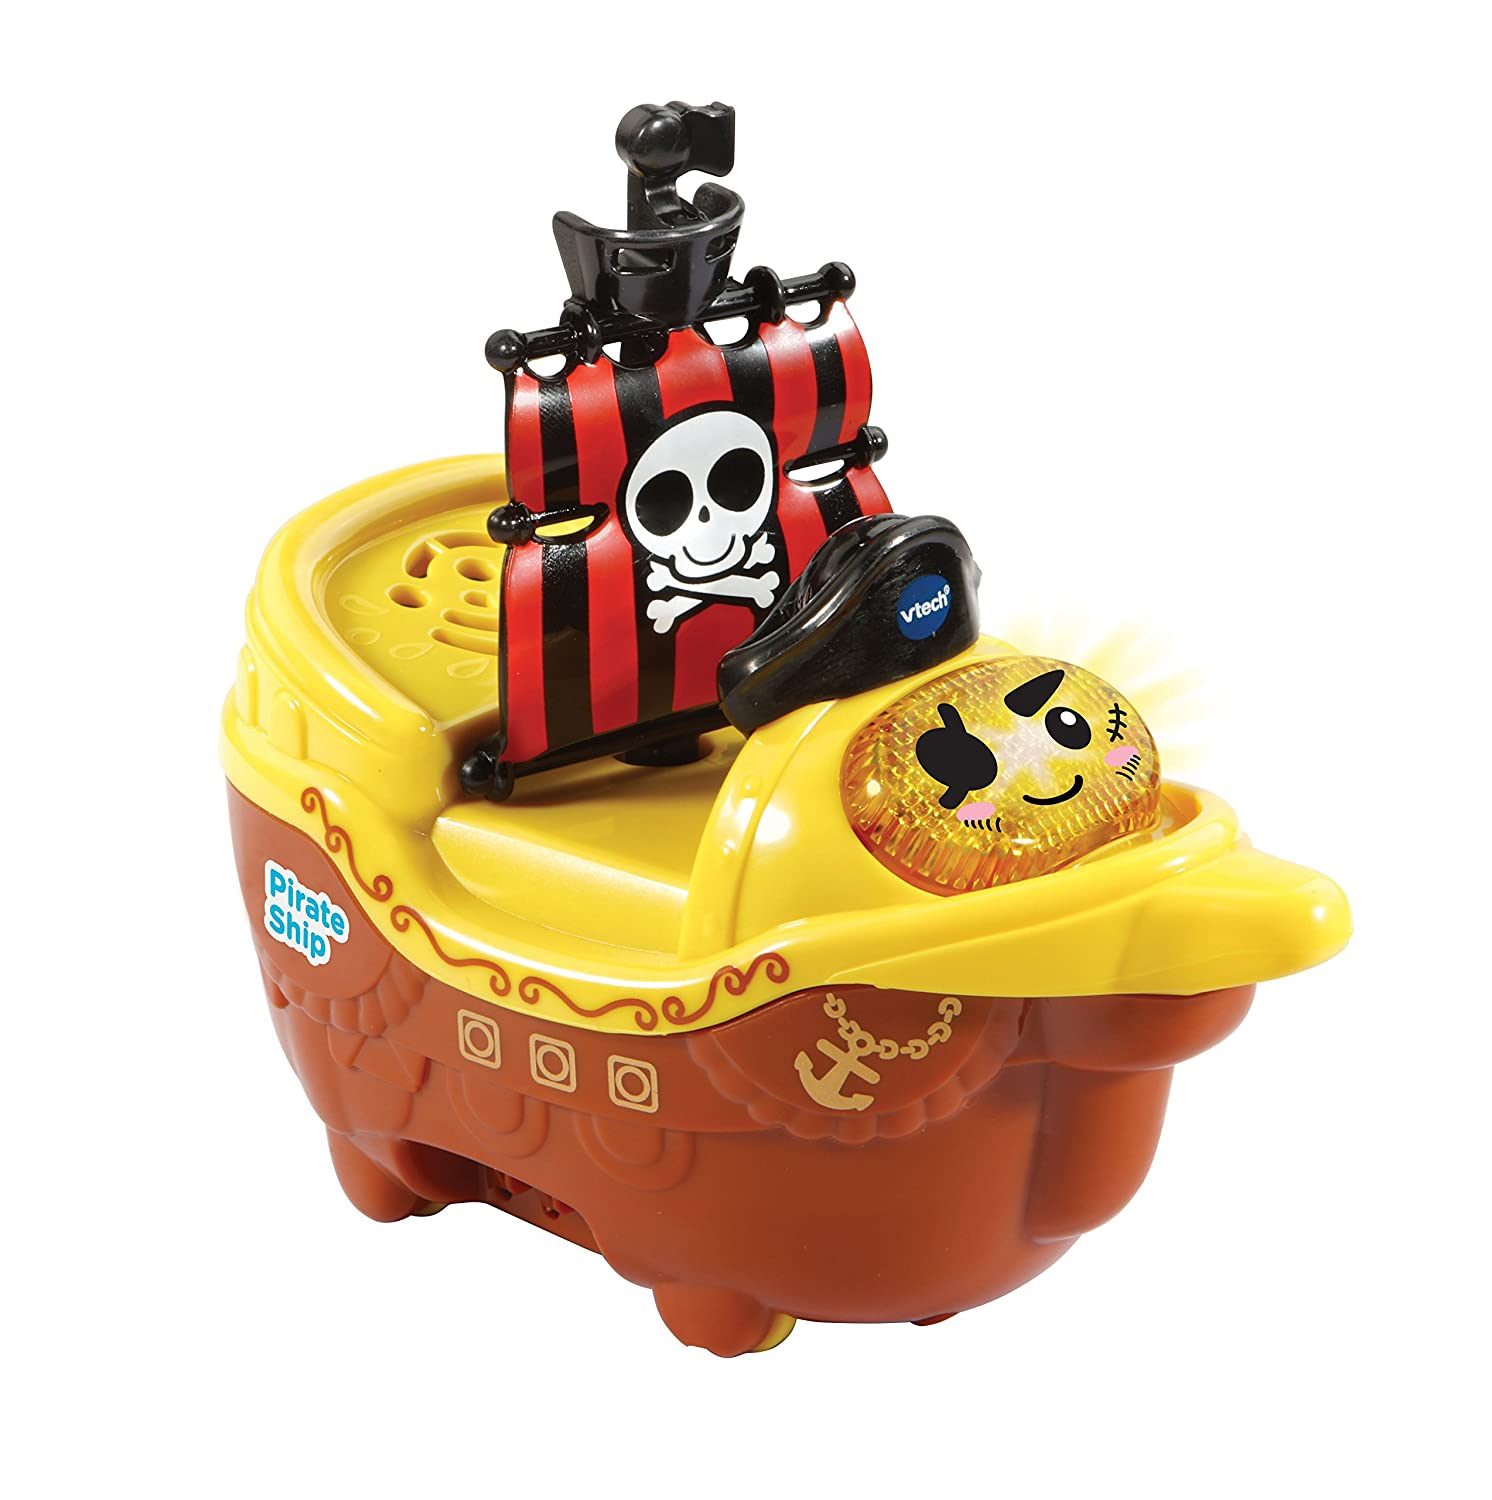 VTech 509703 Toot Splash Pirate Ship